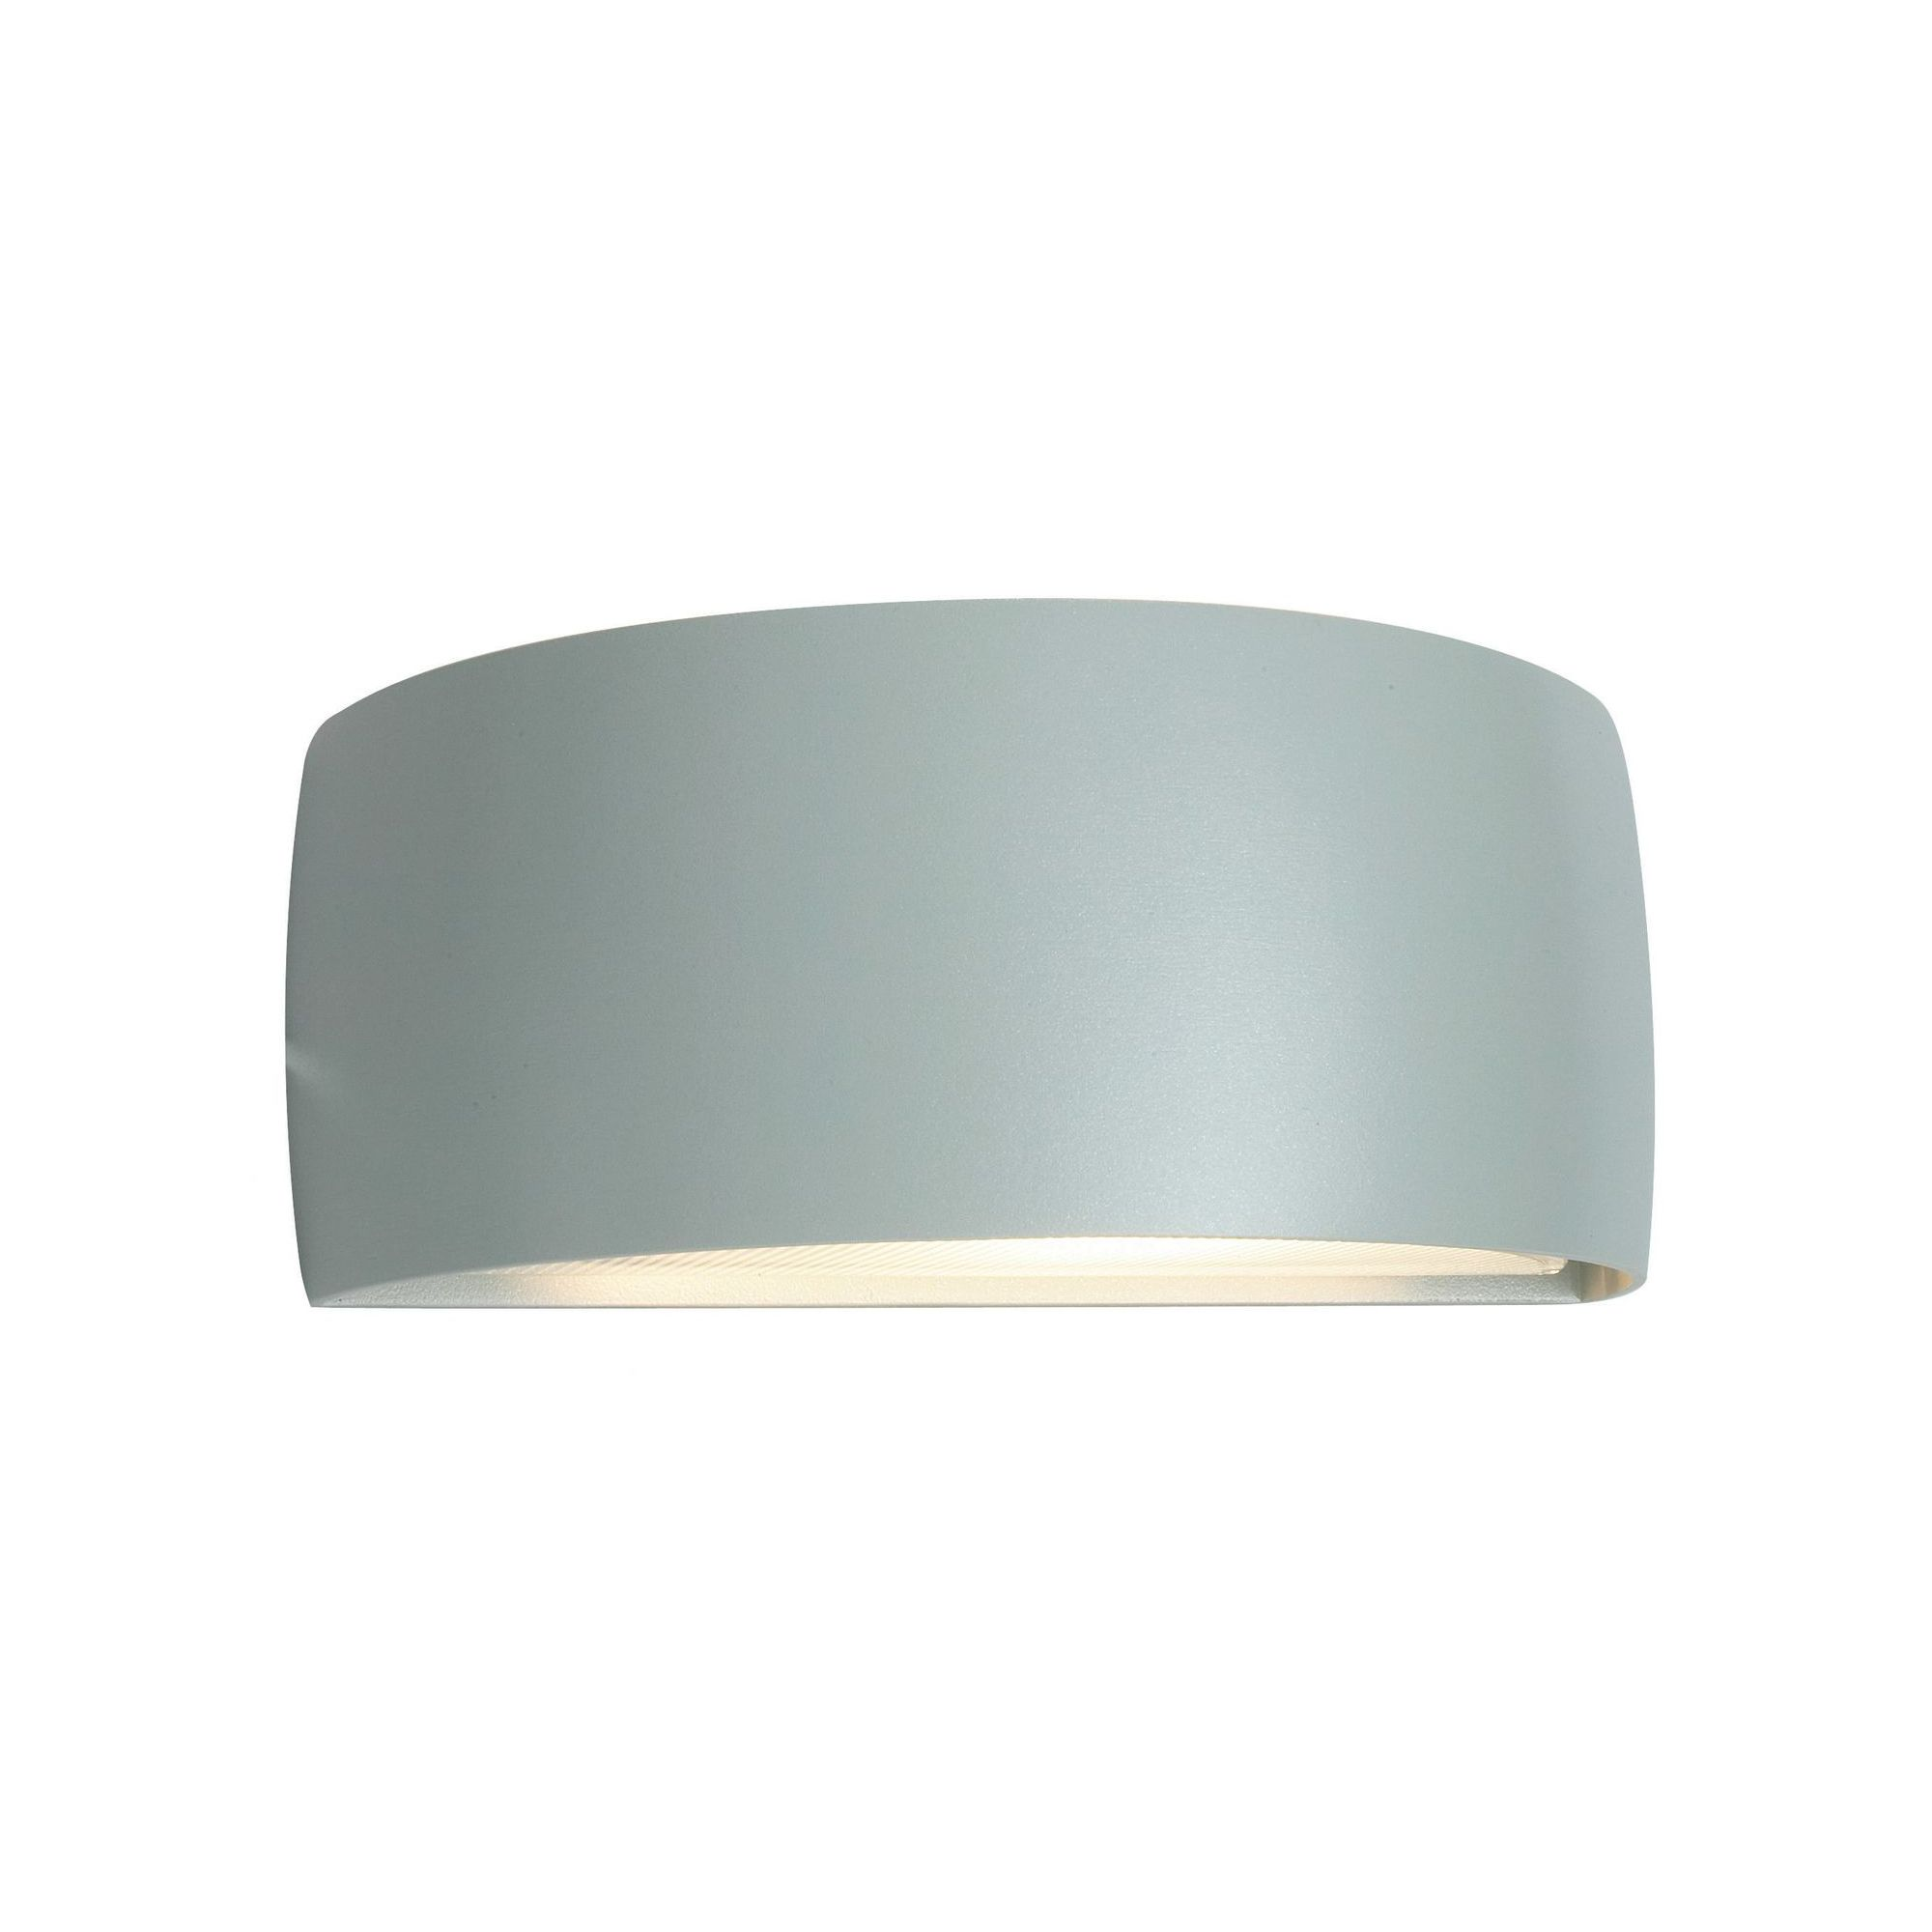 Home and garden > Lighting: Norlys Karlstad Outdoor Hanging Light - Black - Special Offers